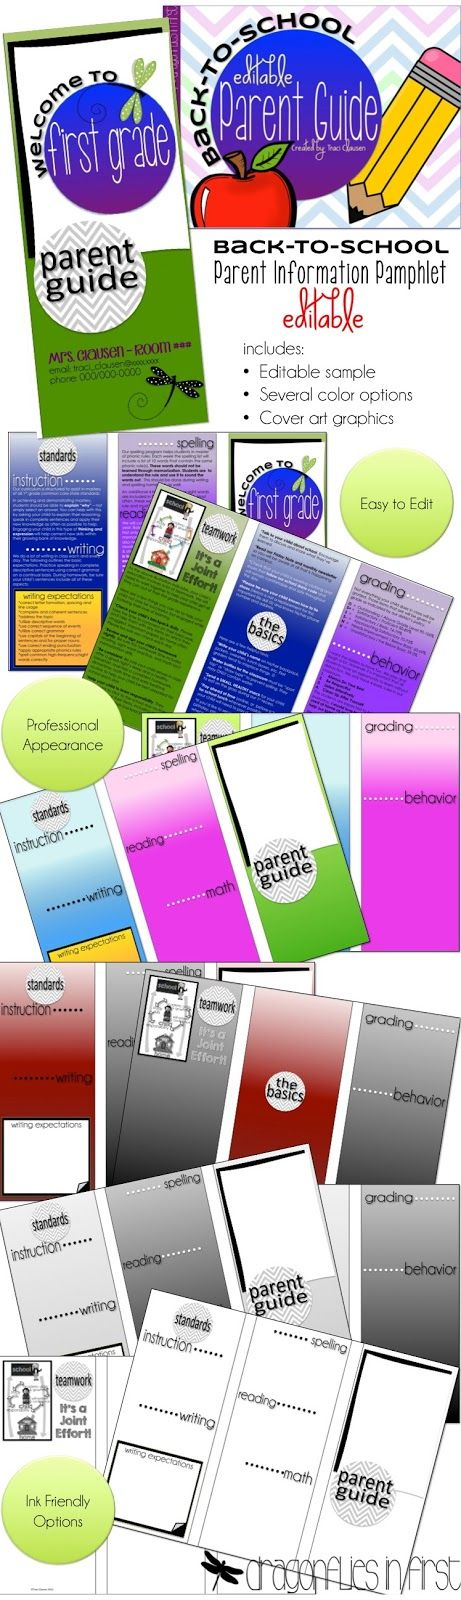 Parent Guide - Pamphlet for back-to-school or parent information night - EDITABLE! Several different color-combo template included.